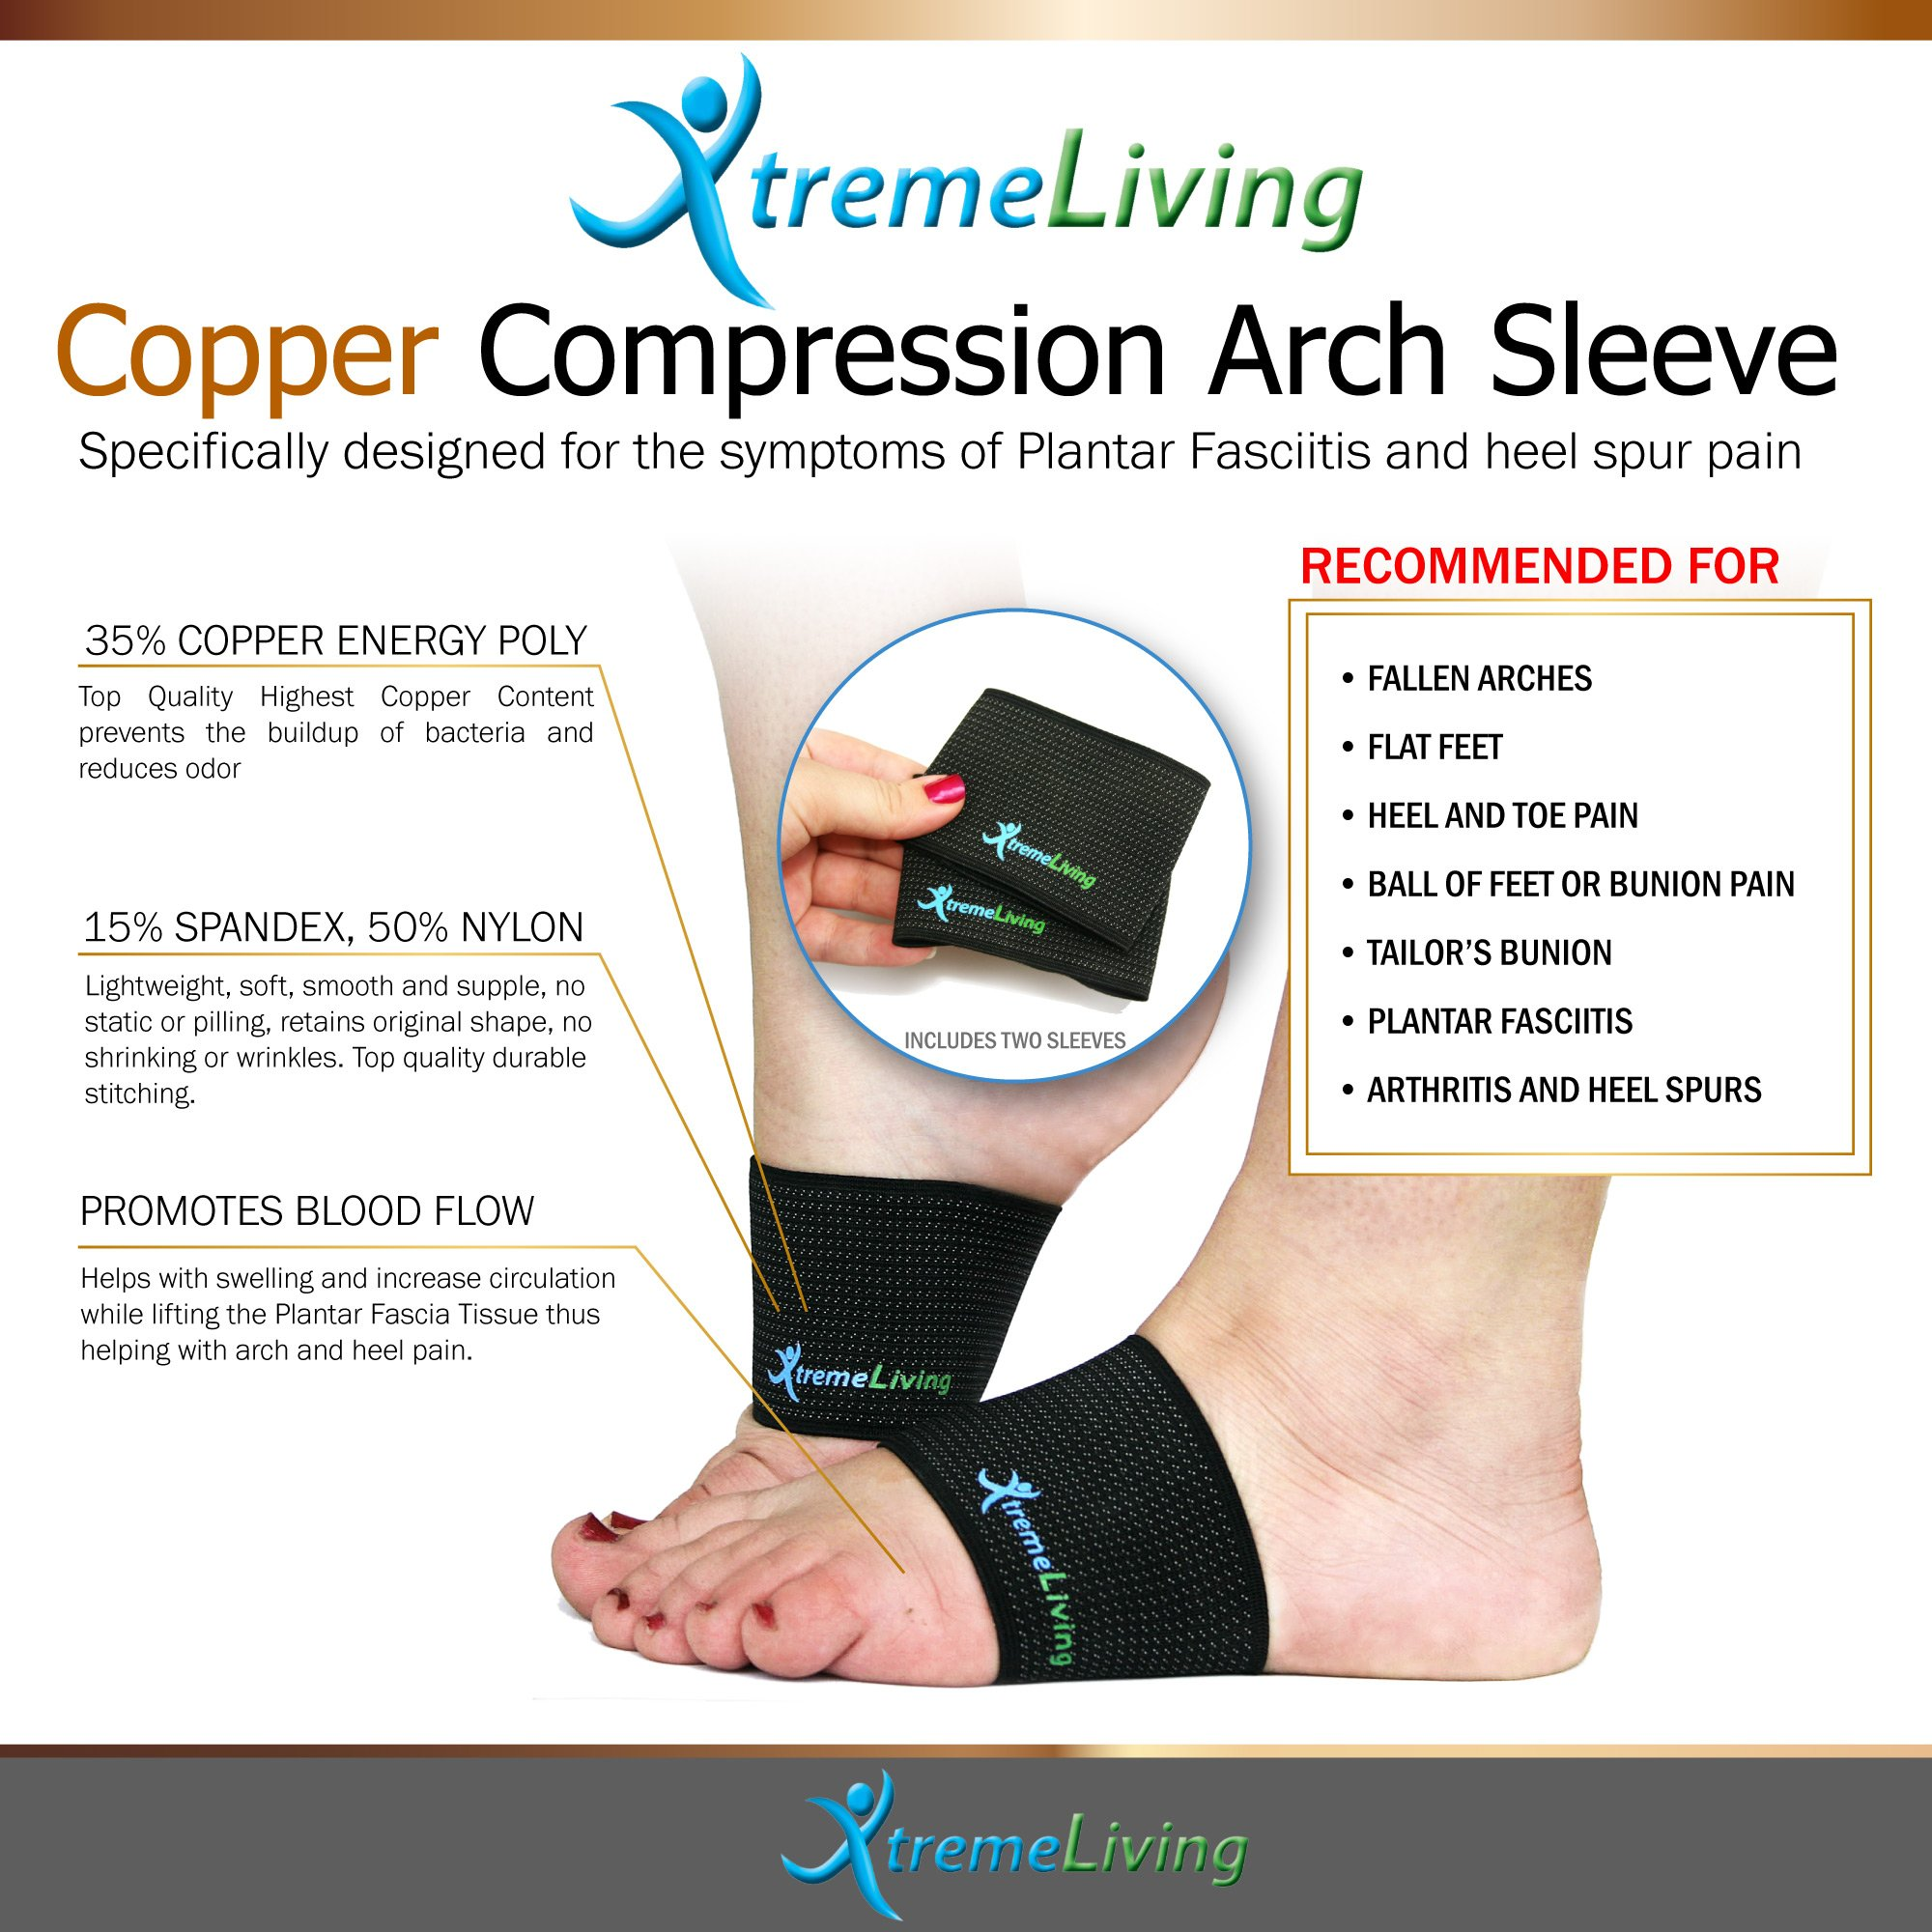 Plantar Fasciitis Compression Arch Support, 2 Arch Sleeves, 2 Gel Heel Sleeves, Massage Ball, 5pc Set by Xtreme Living (Image #2)